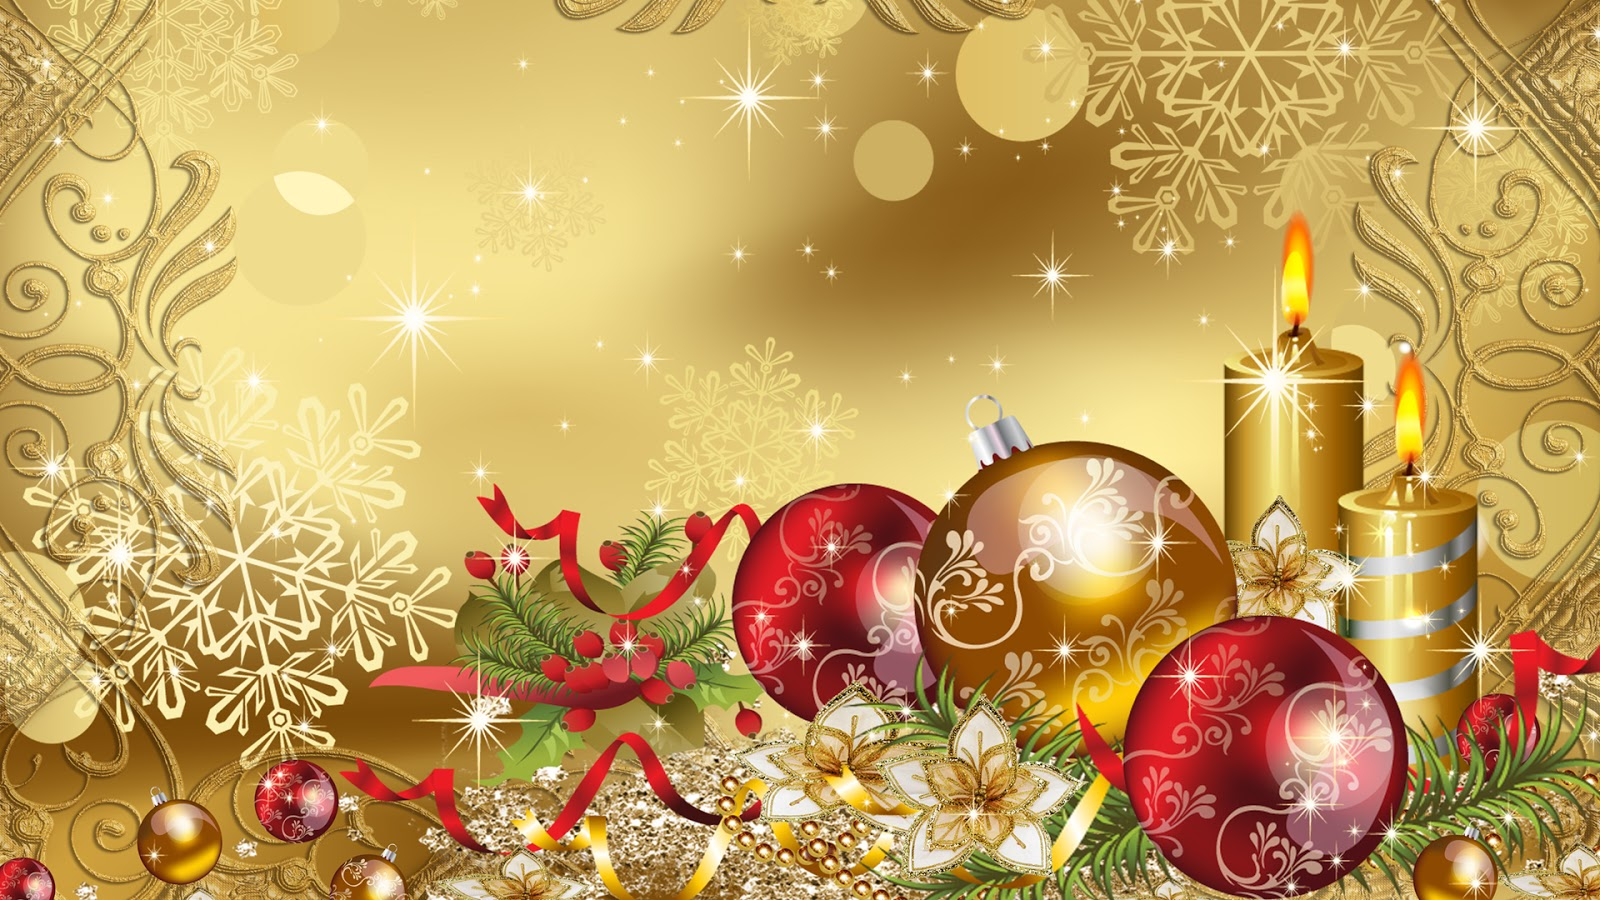 Gold Christmas Desktop